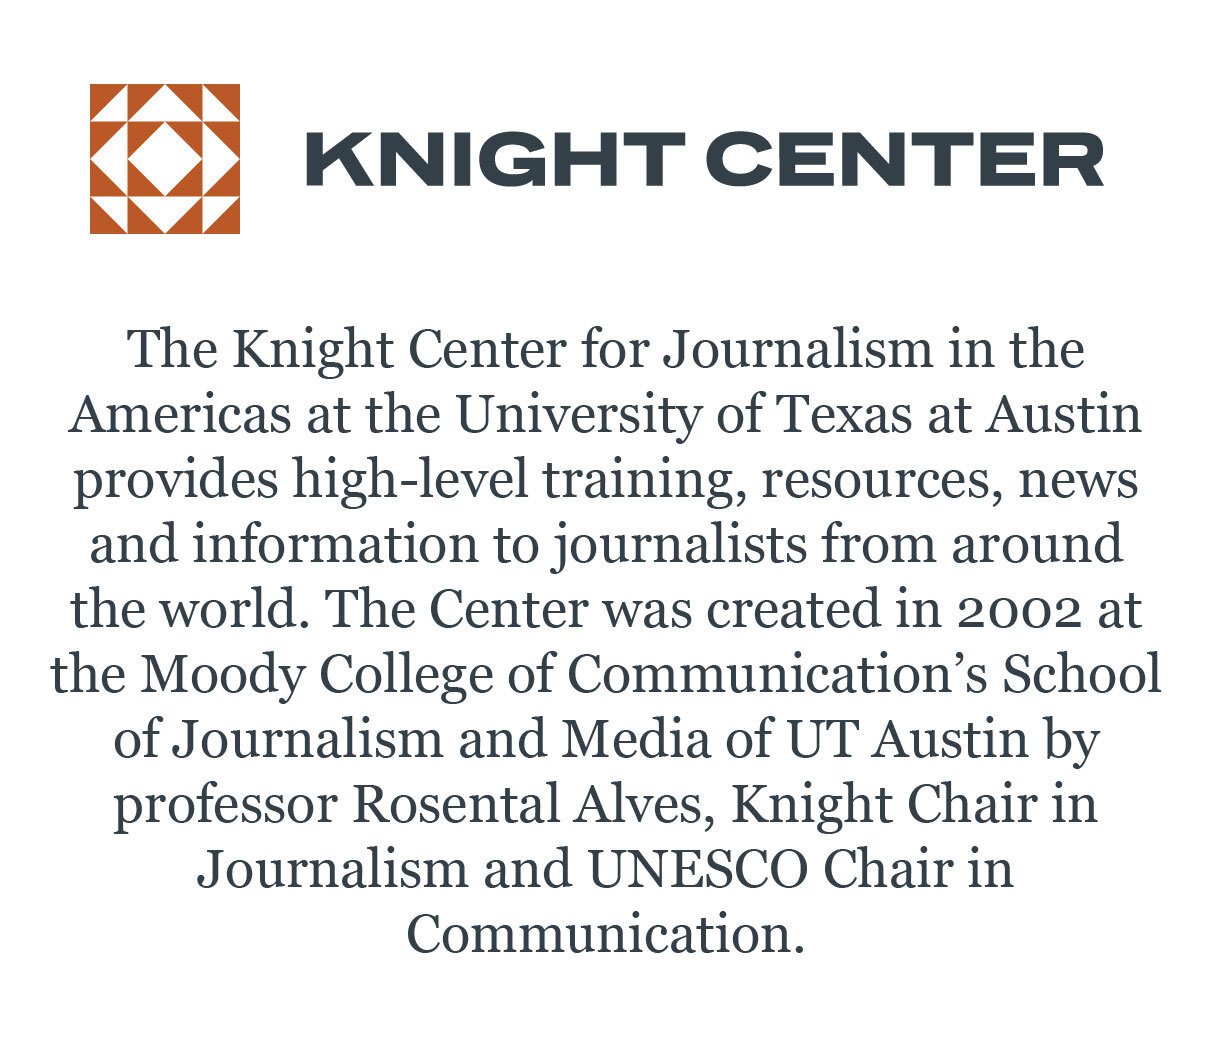 knight-center-journalism